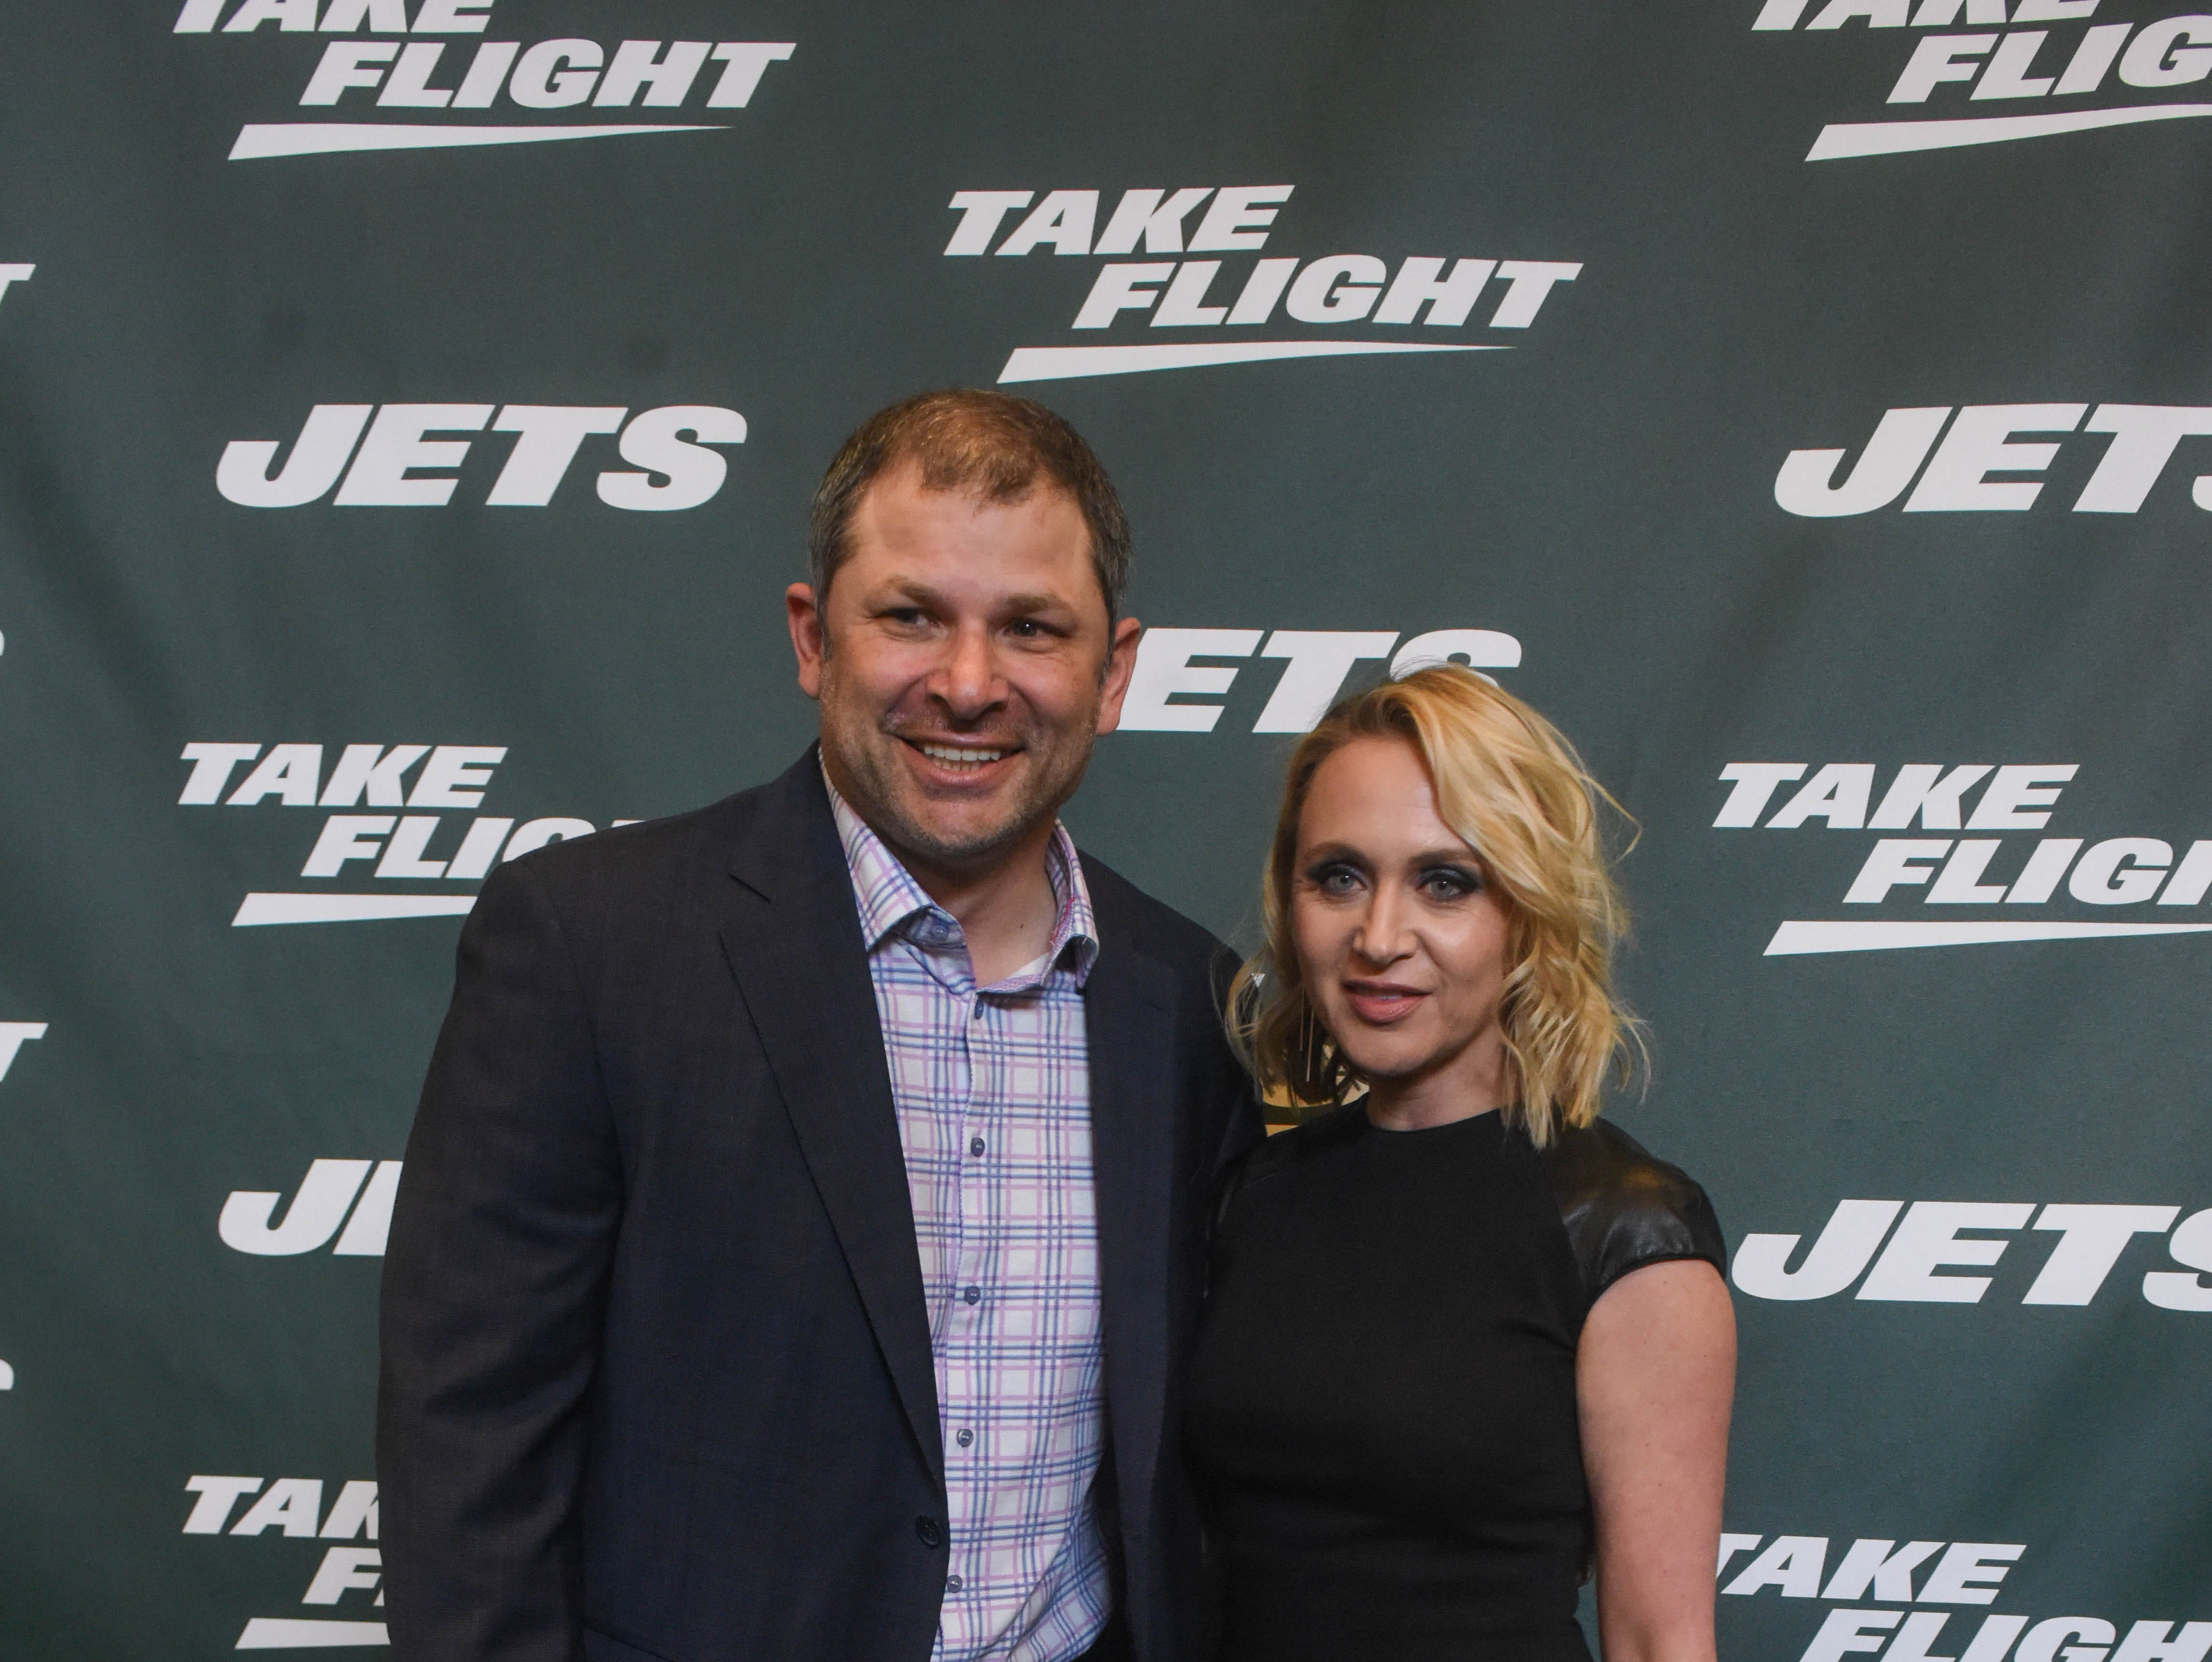 Wayne Chrebet (NY Jets) and Amy Chrebet. The NY Jets unveiled their new football uniforms with an event hosted by JB Smoove at Gotham Hall in New York. 04/05/2019